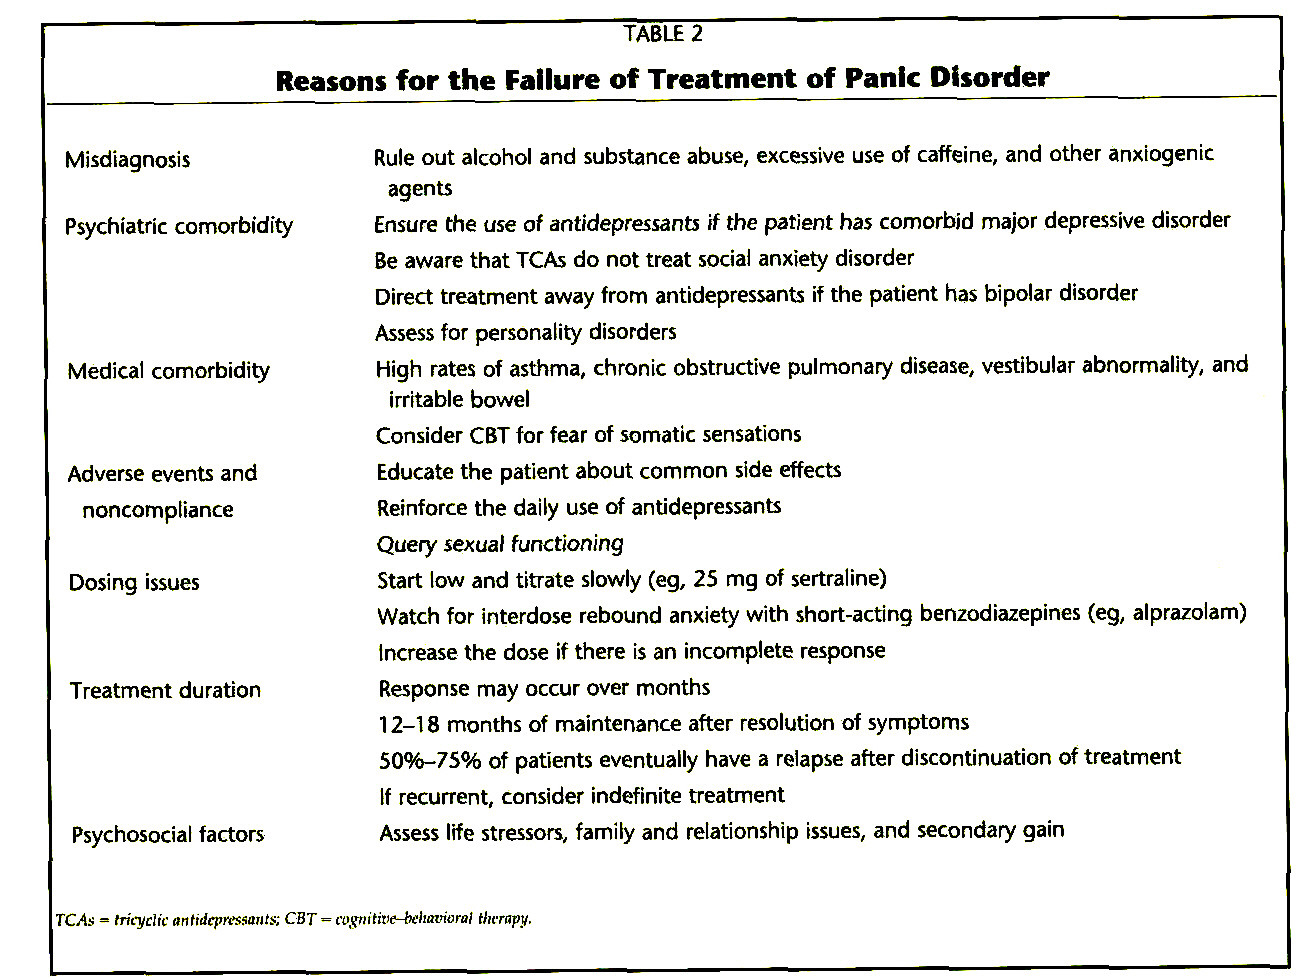 TABLE 2Reasons for the Failure of Treatment of Panic Disorder